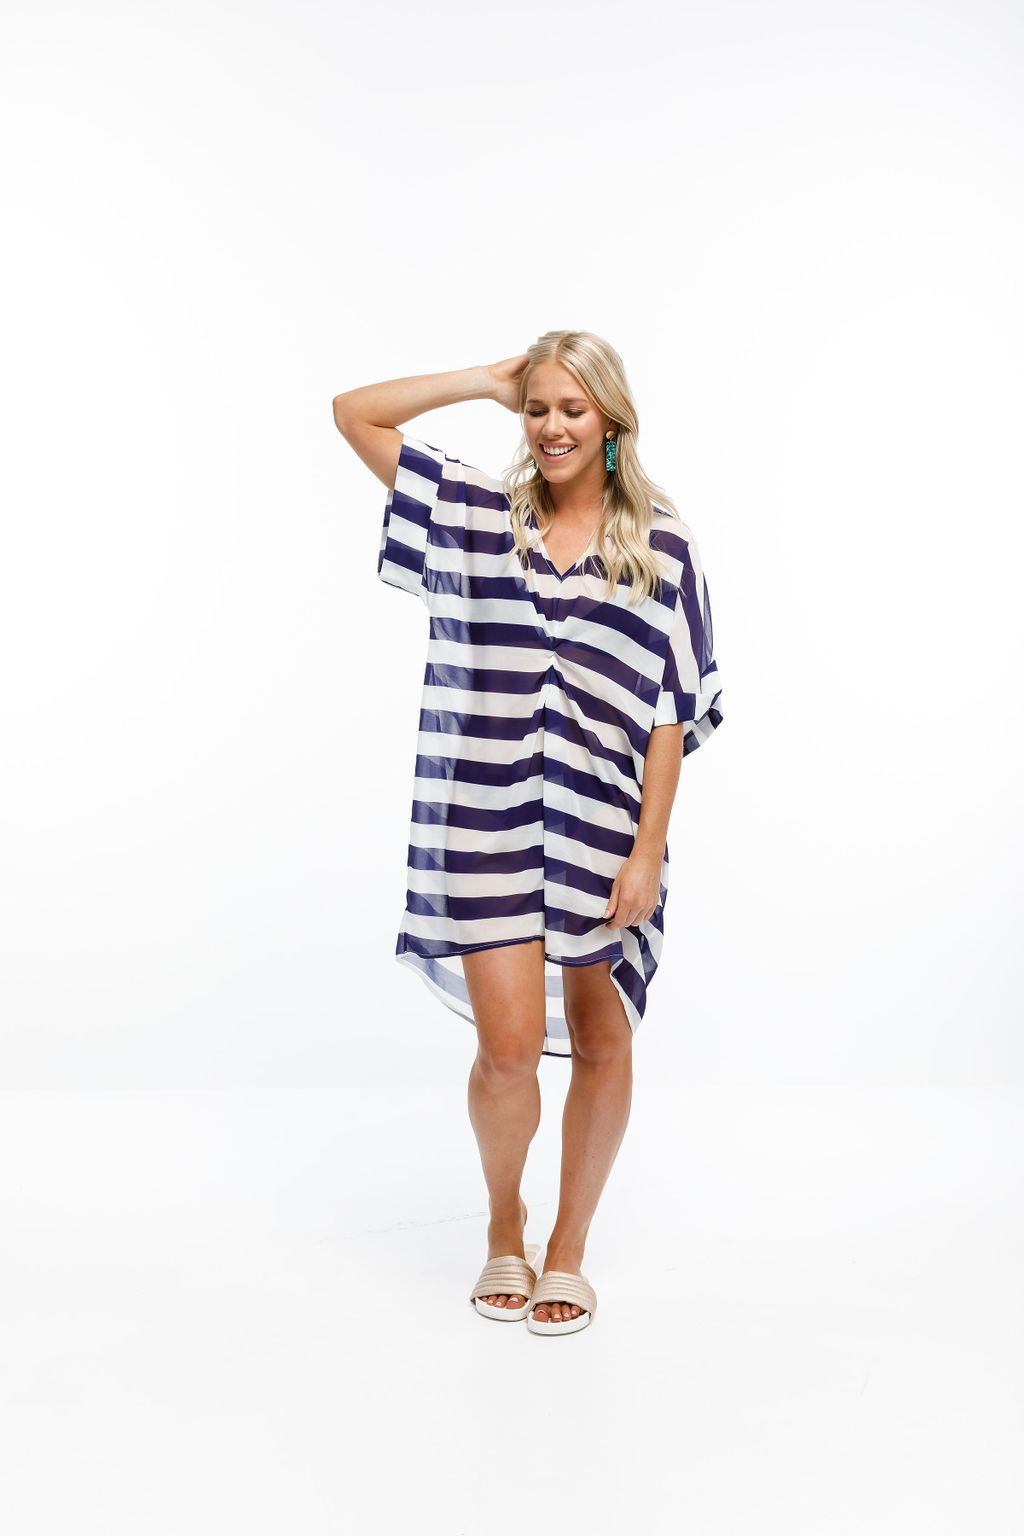 NGAIO DRESS - Navy & White Stripes (incl. slip)